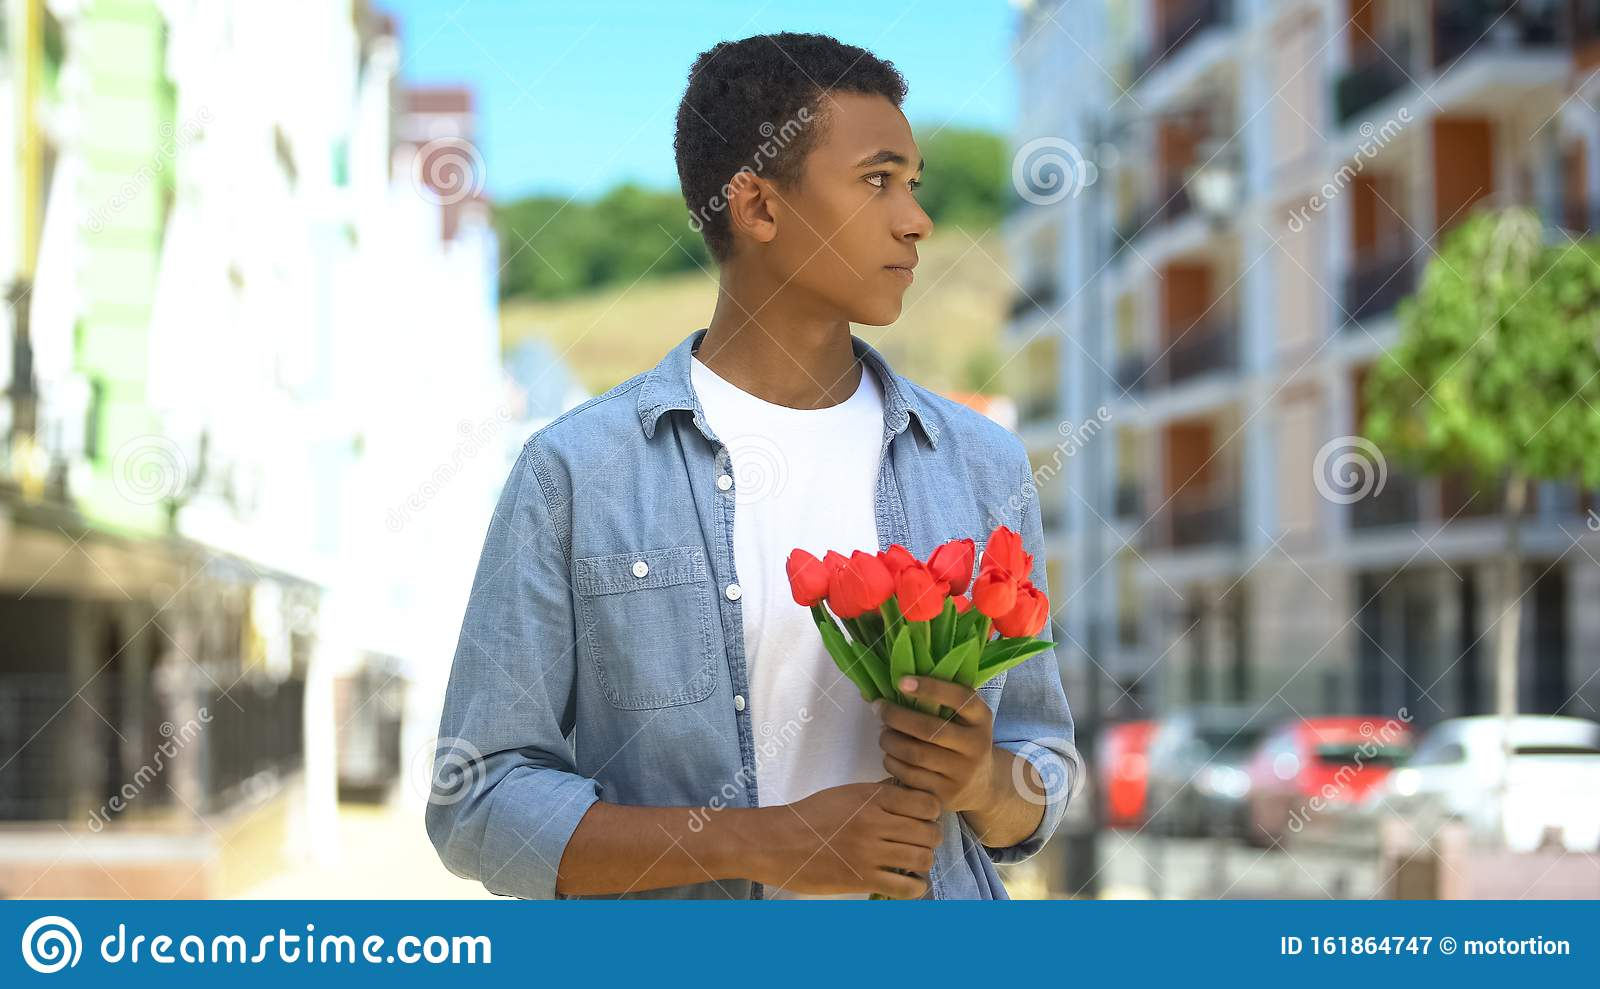 Nervous Young Male With Tulips Bouquet Waiting For Girl On